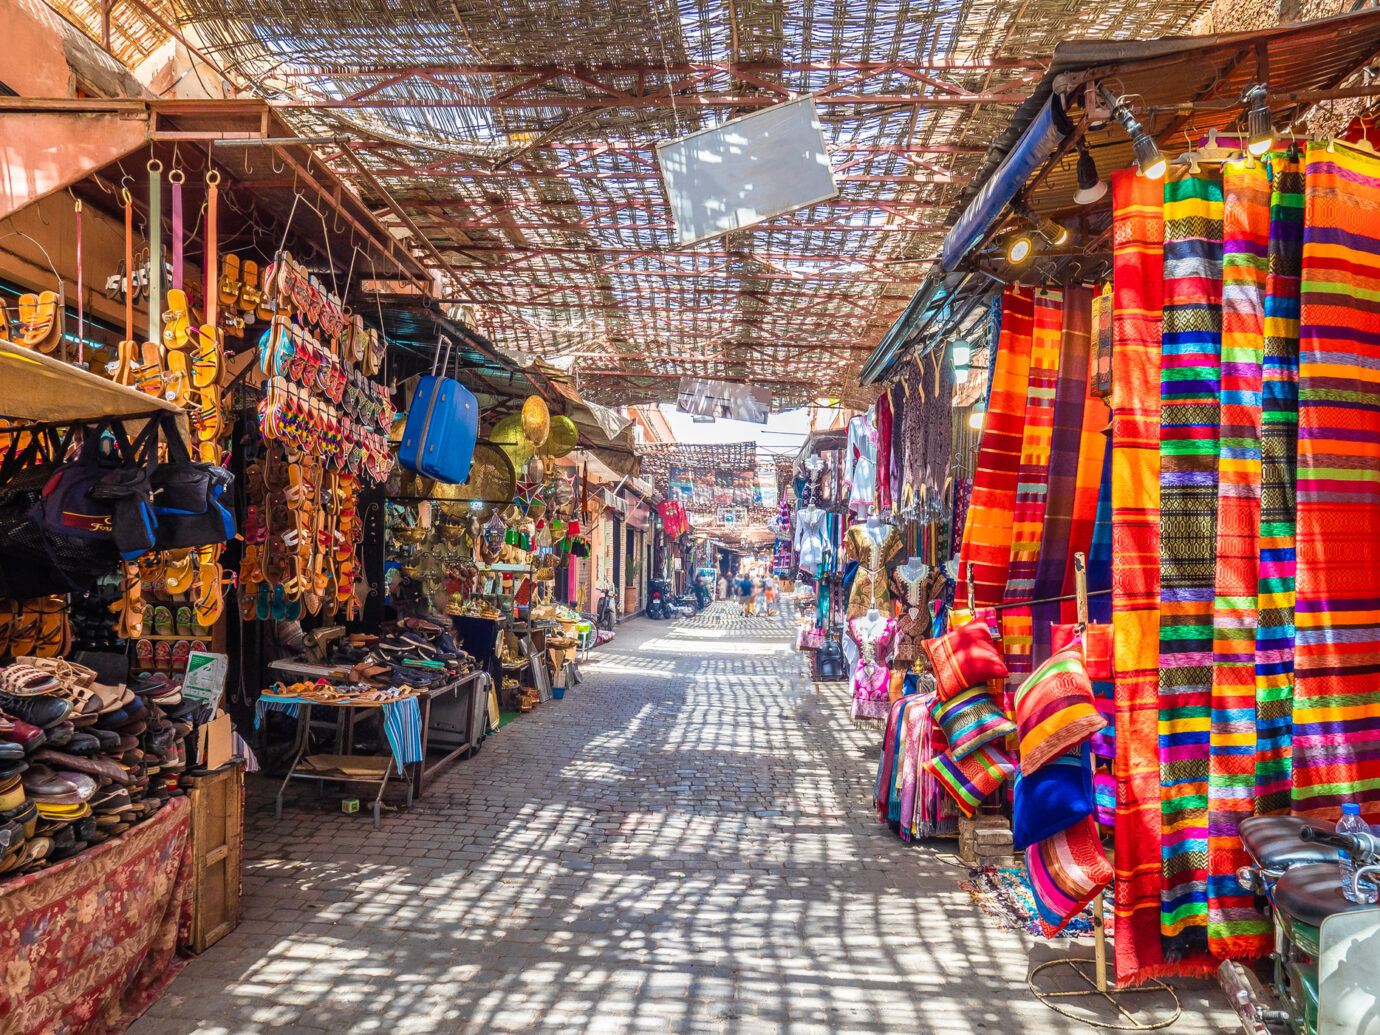 Souvenirs on the Jamaa el Fna in old Medina, Marrakesh, Morocco